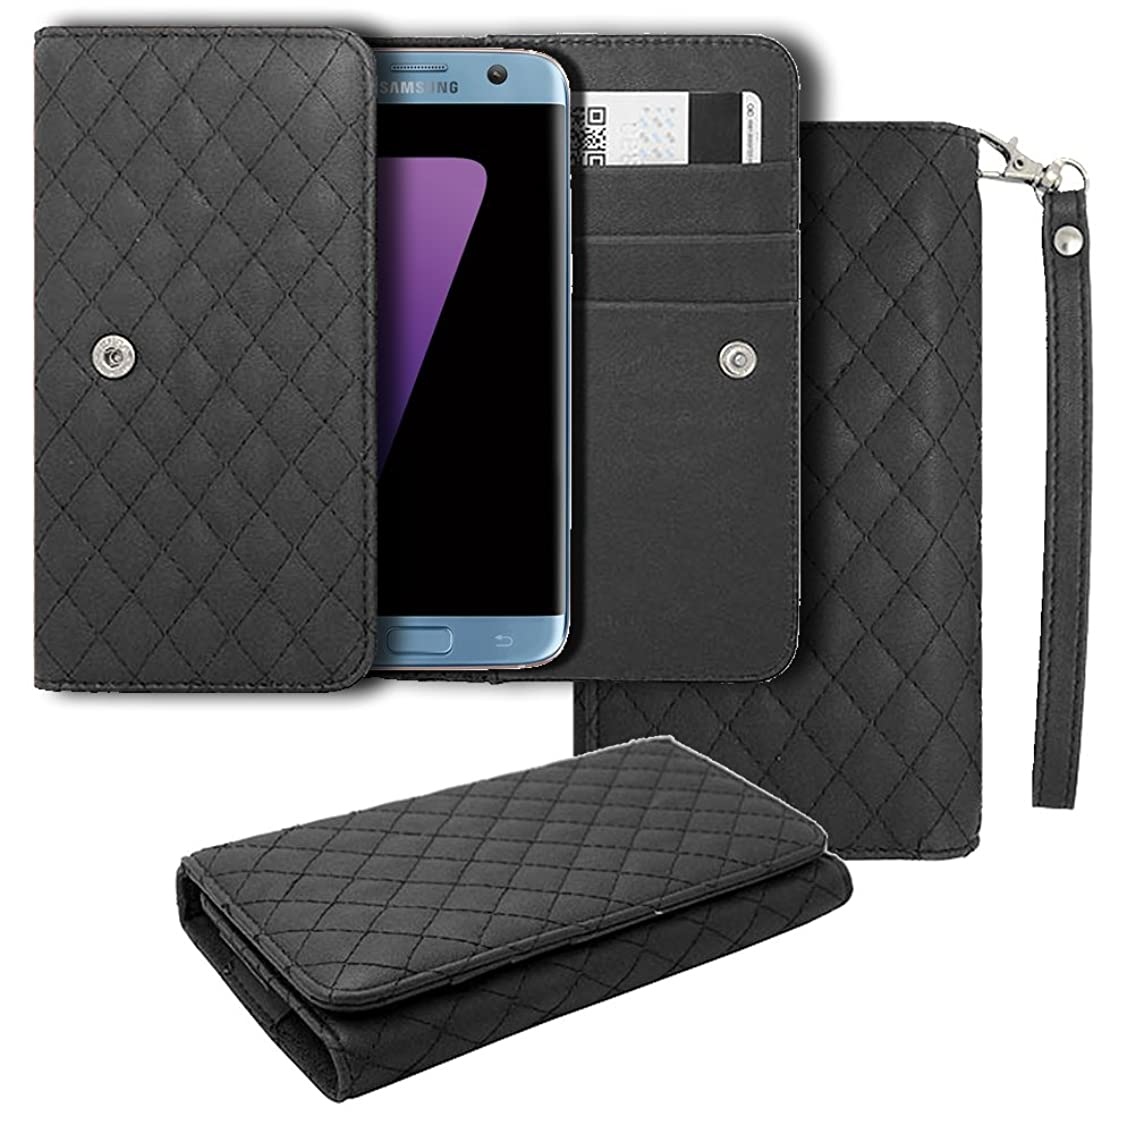 BLU S1 Leather Pouch, HJ Power[TM] For BLU [S1] (Unlocked)--CH5 Smart Phone Universal PU Leather Checker Style Wallet Pouch Black